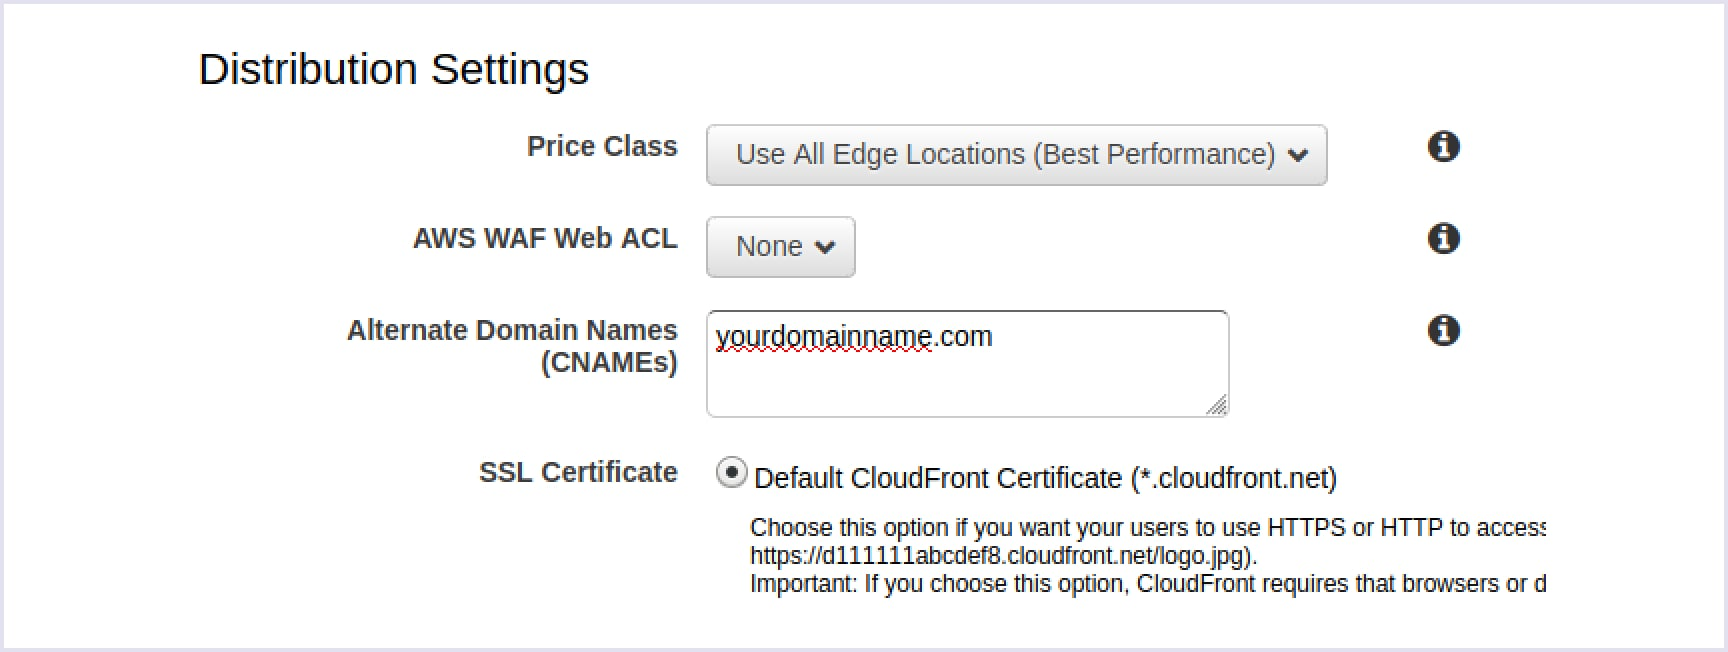 Entering real domain name and getting default CloudFront certificate